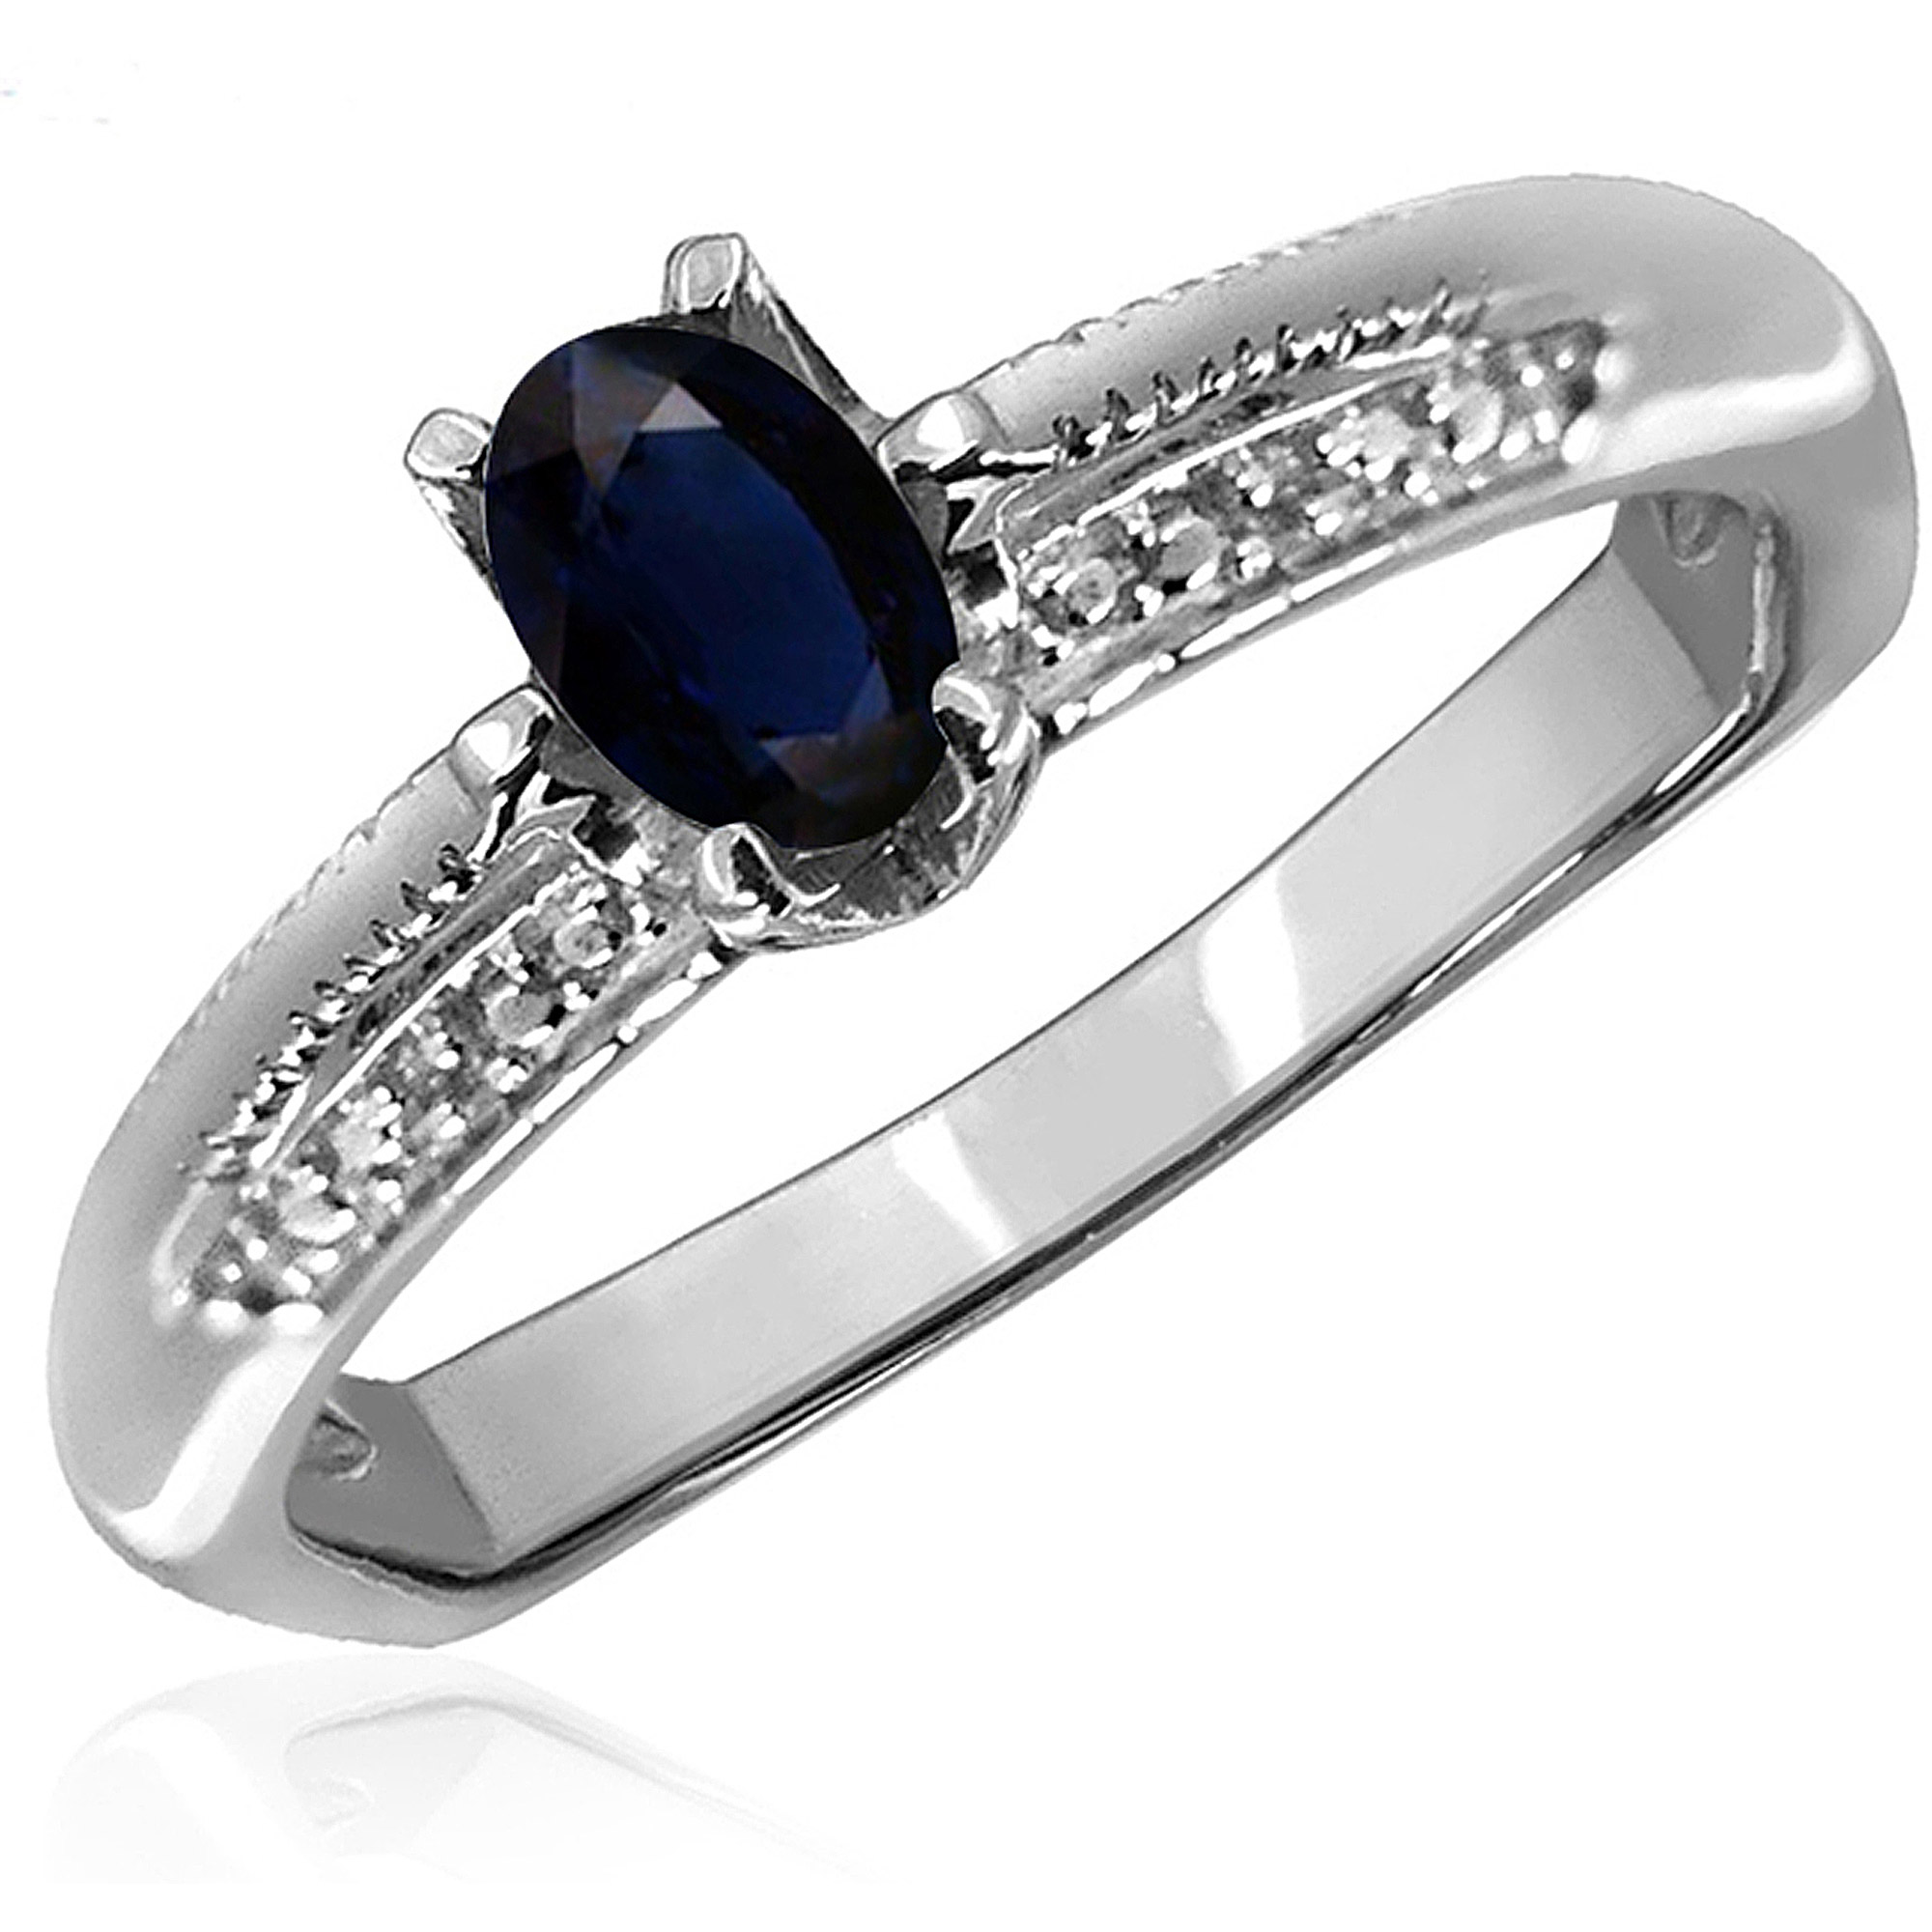 JewelersClub 0.67 Carat T.G.W. Sapphire Gemstone and Accent White Diamond Women's Ring